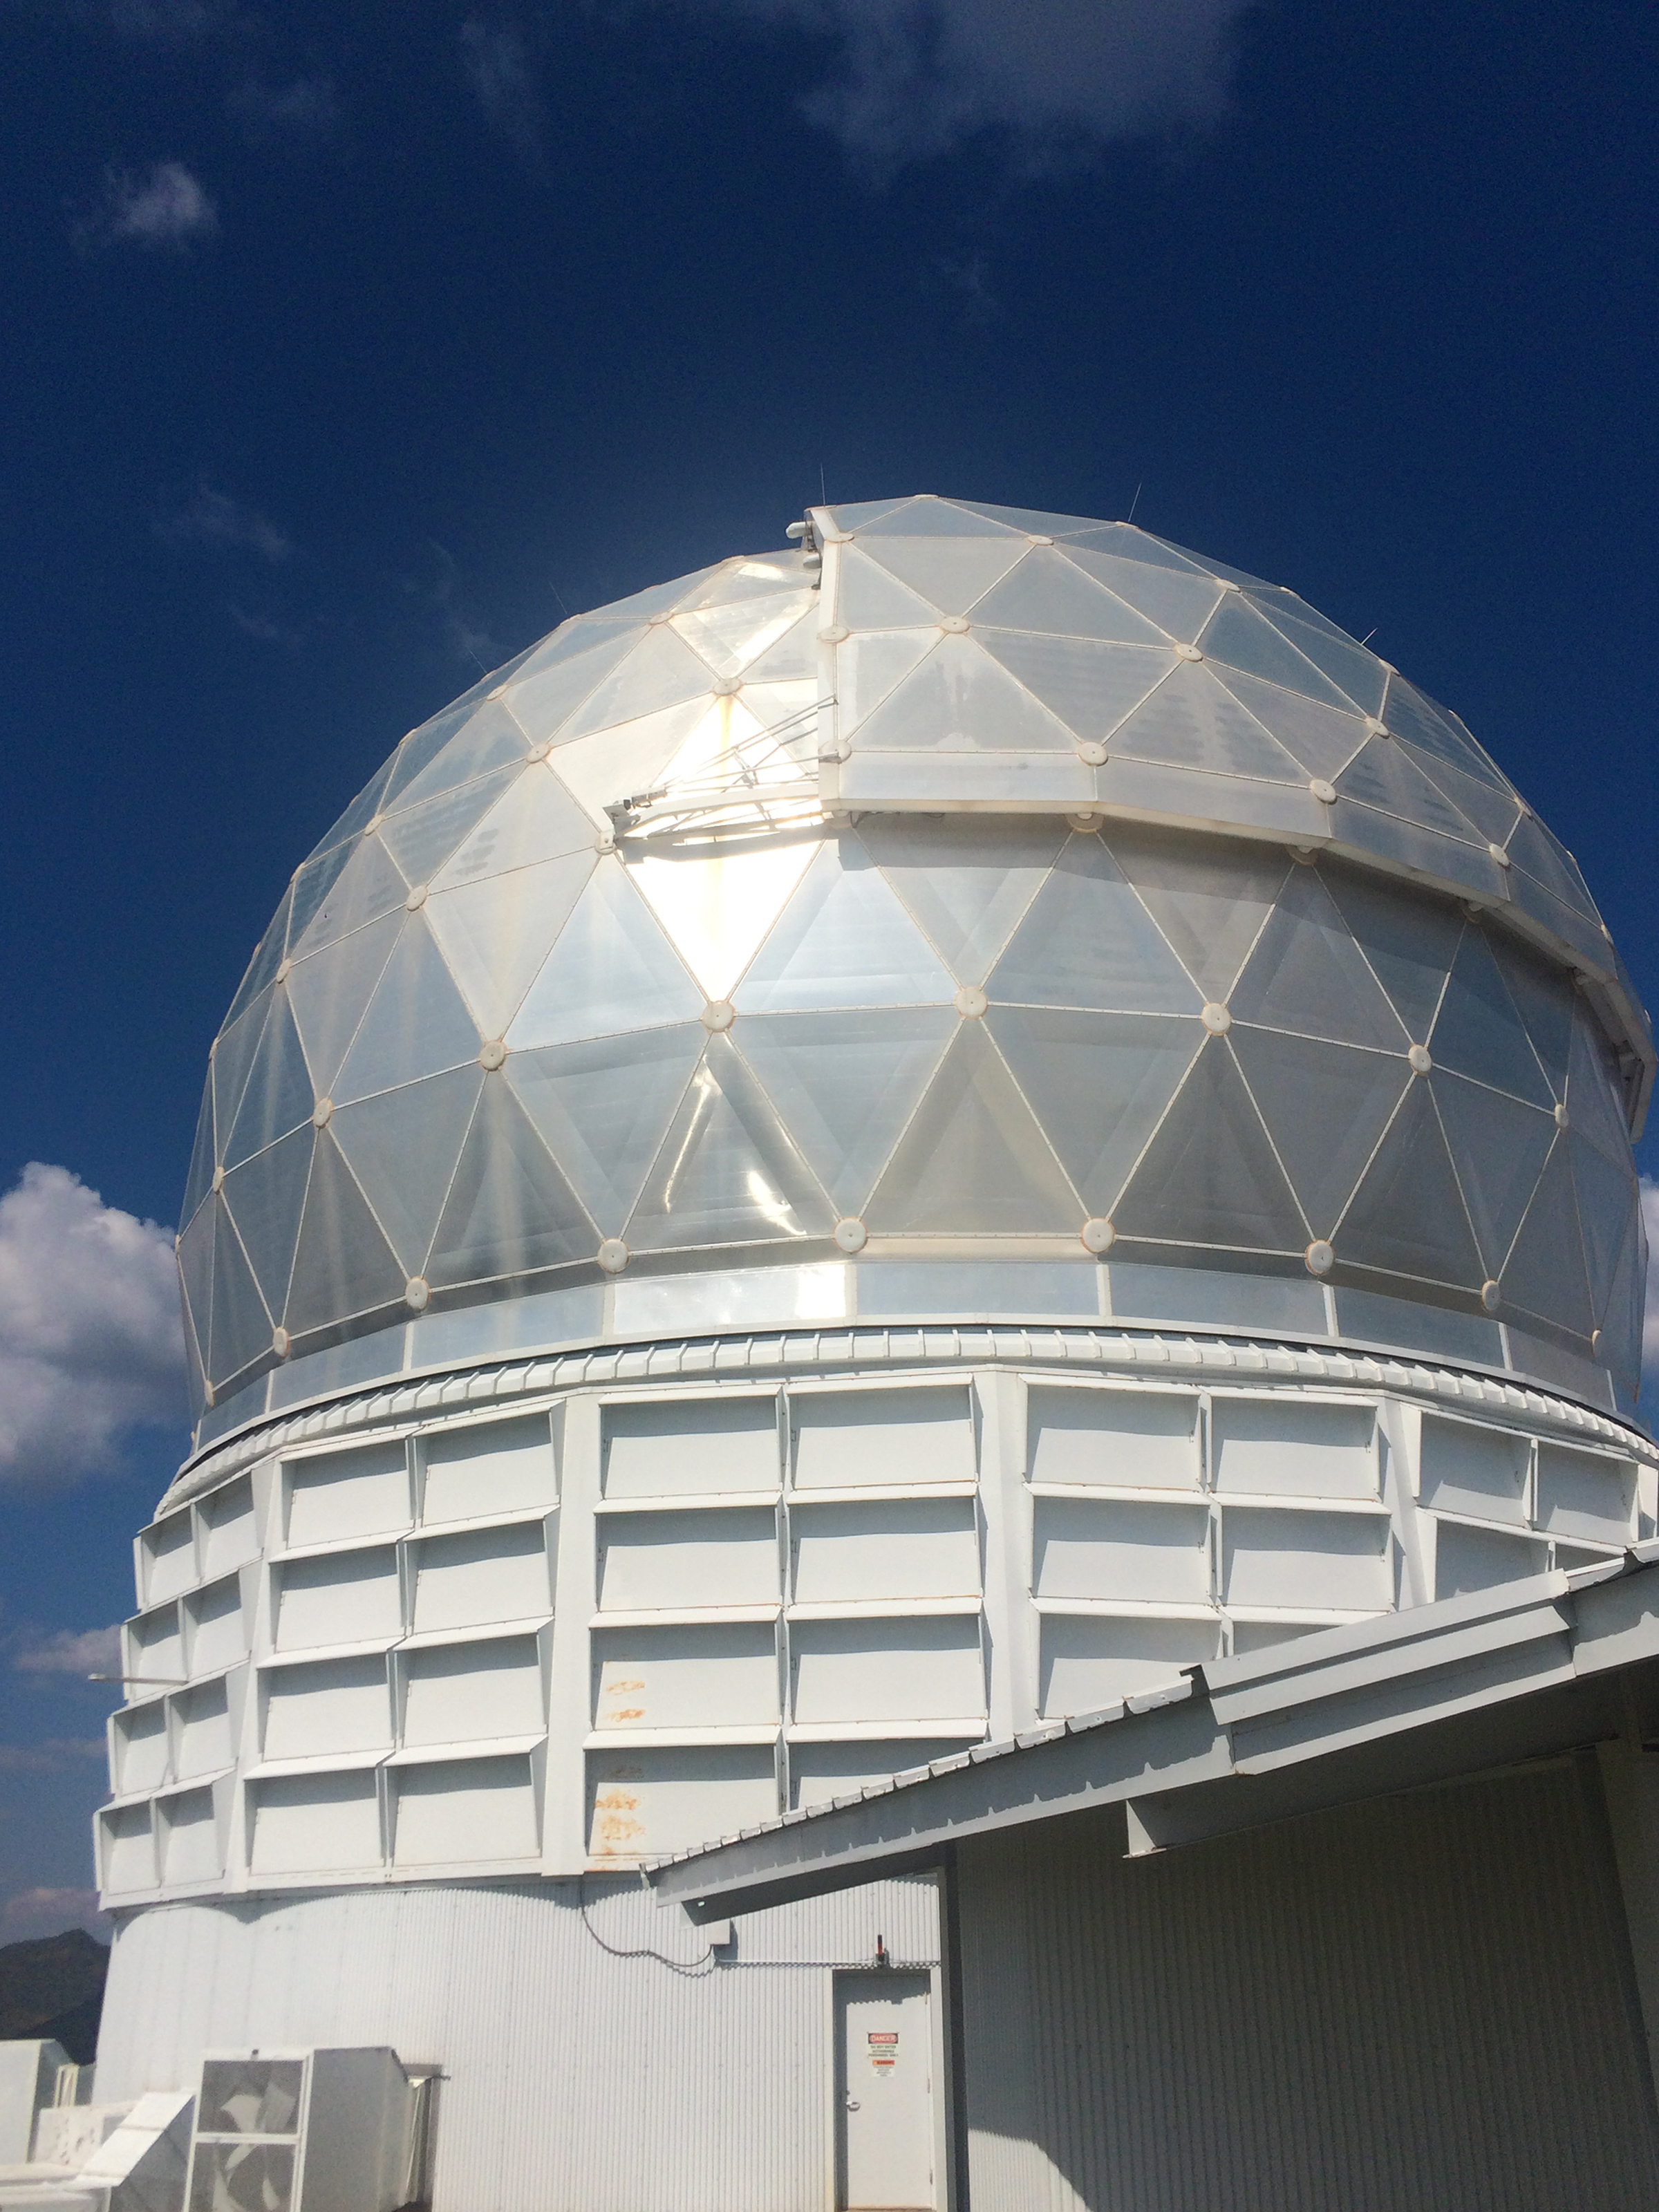 The observatory that contains the Hobby Elberly underneath the dome.Photo by Jasmina Kelemen.